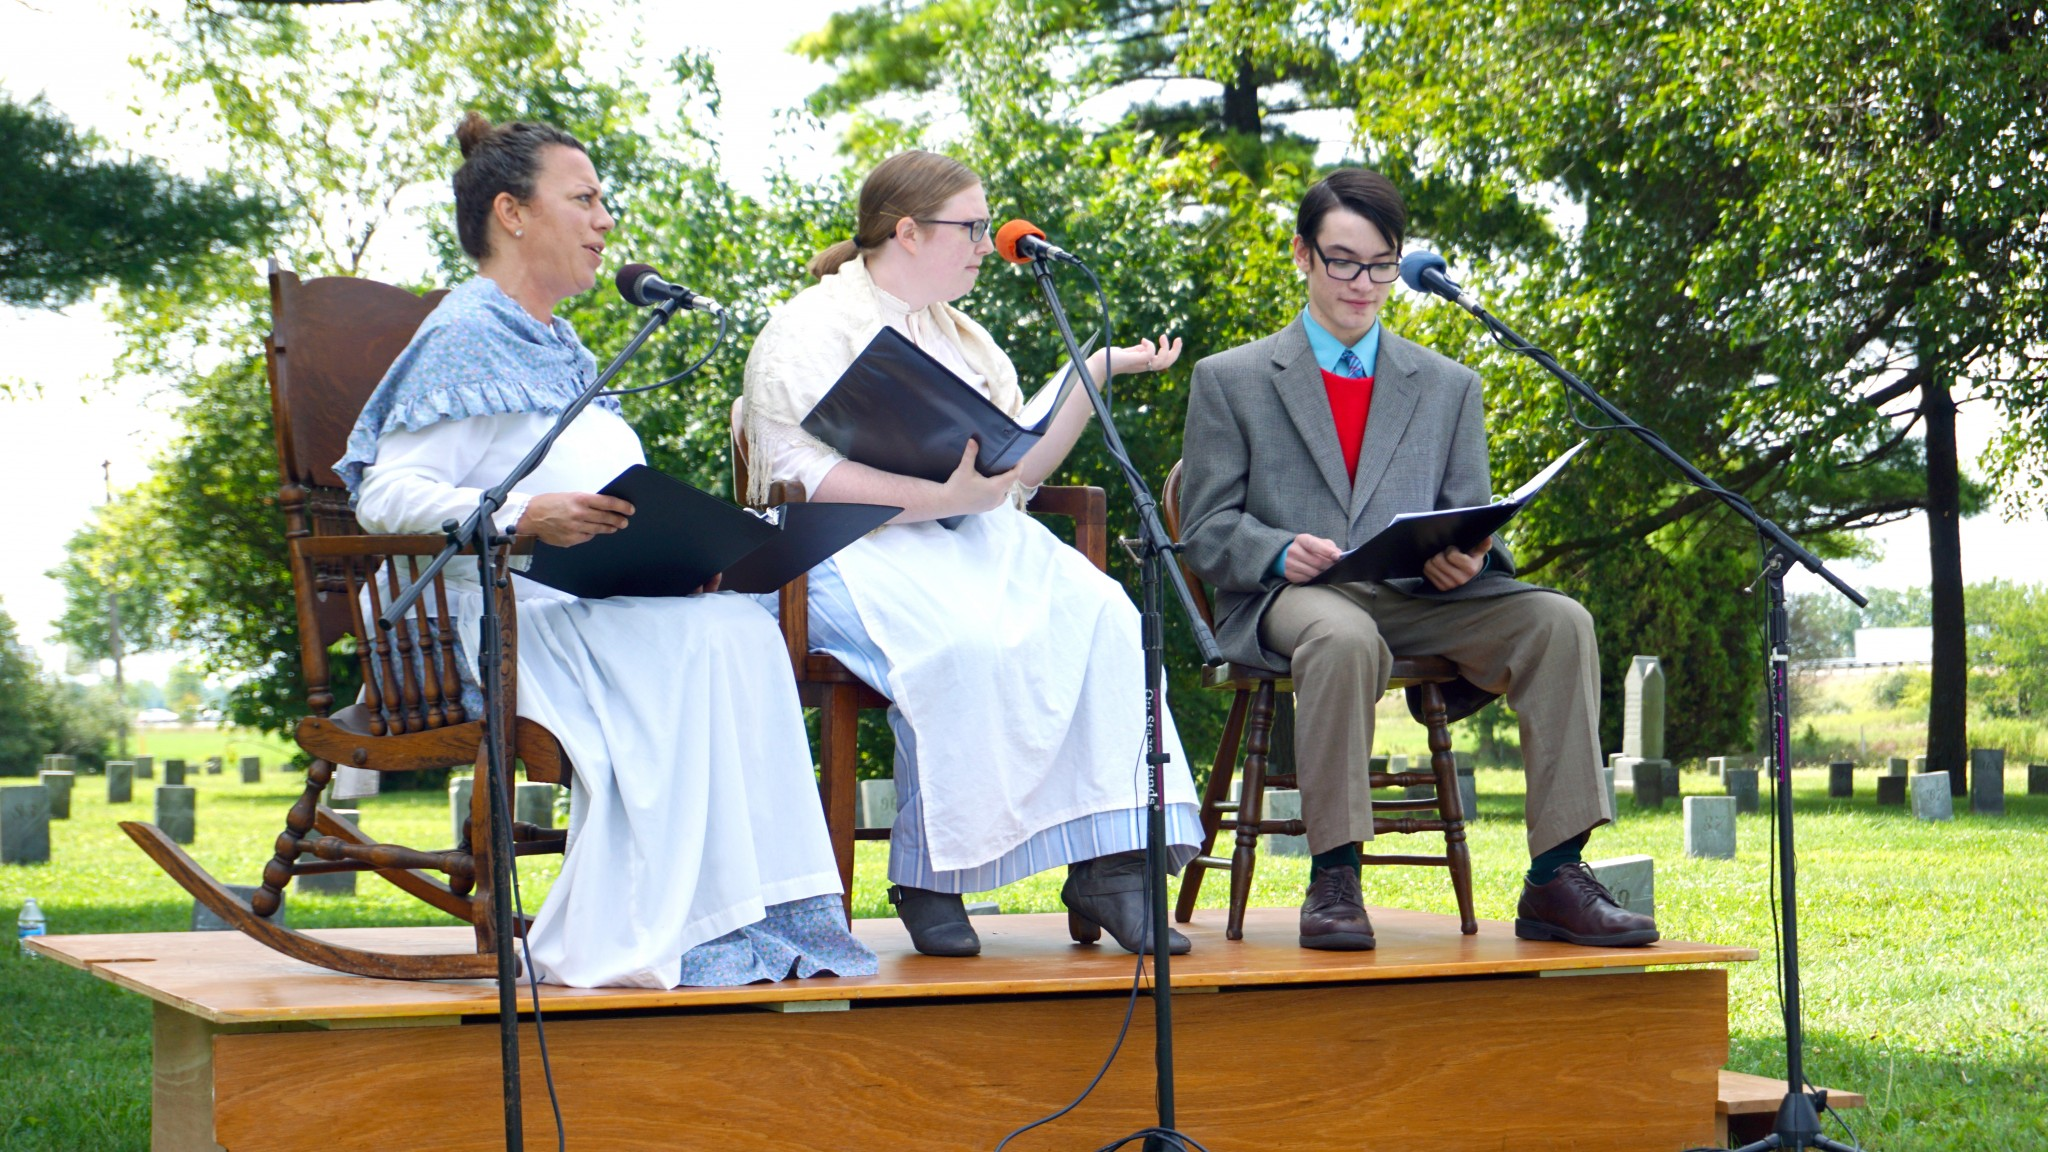 Local residents will portray early citizens of Wood County at Wood County Living History Day Sunday, Aug. 22 at 2 p.m. on the Wood County Museum grounds in Bowling Green. The event is free and open to the public. (Photo courtesy of Wood County Museum)